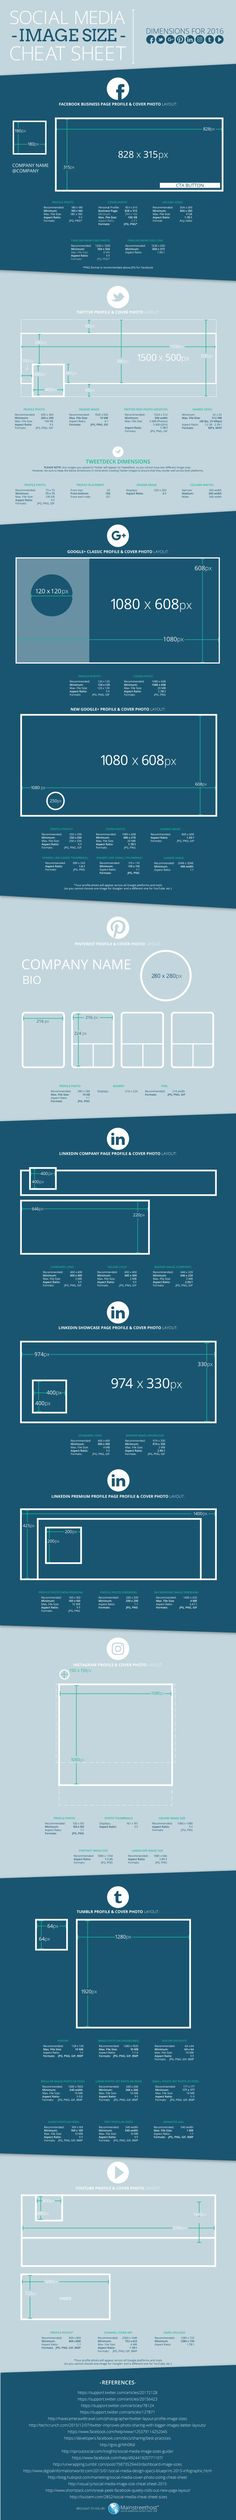 Specifications for images on social networks are constantly evolving, but…